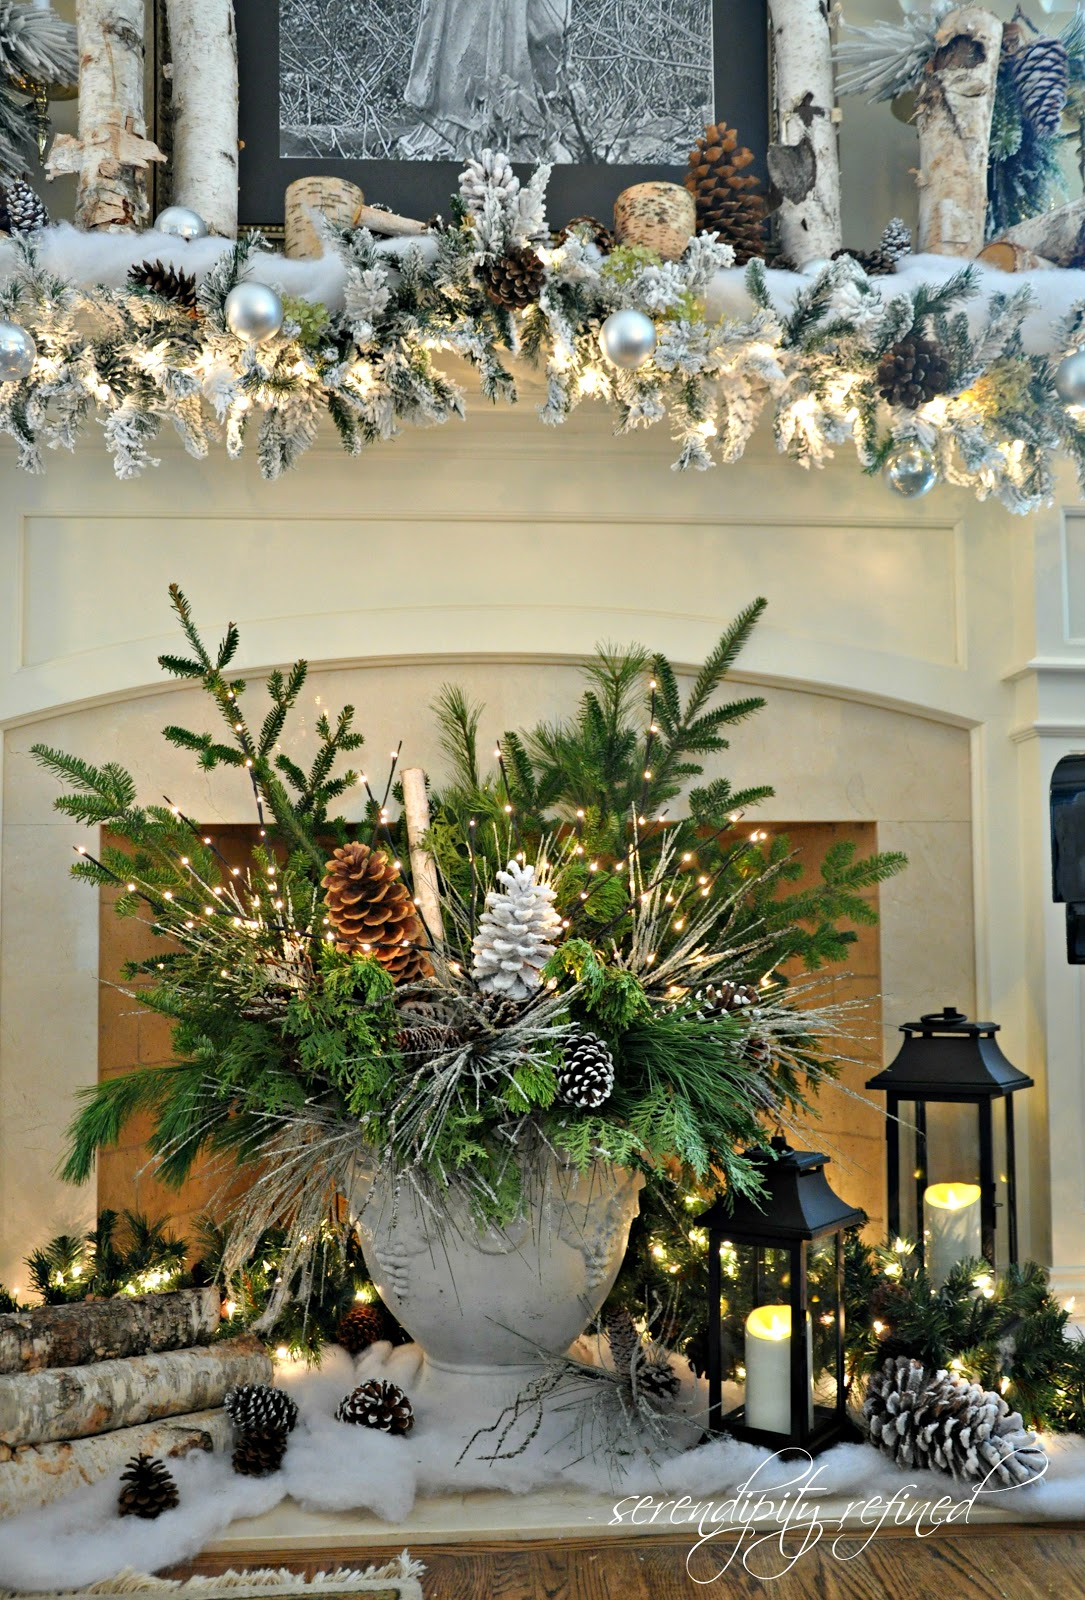 Serendipity refined blog woodland winter mantel and nfl White christmas centerpieces